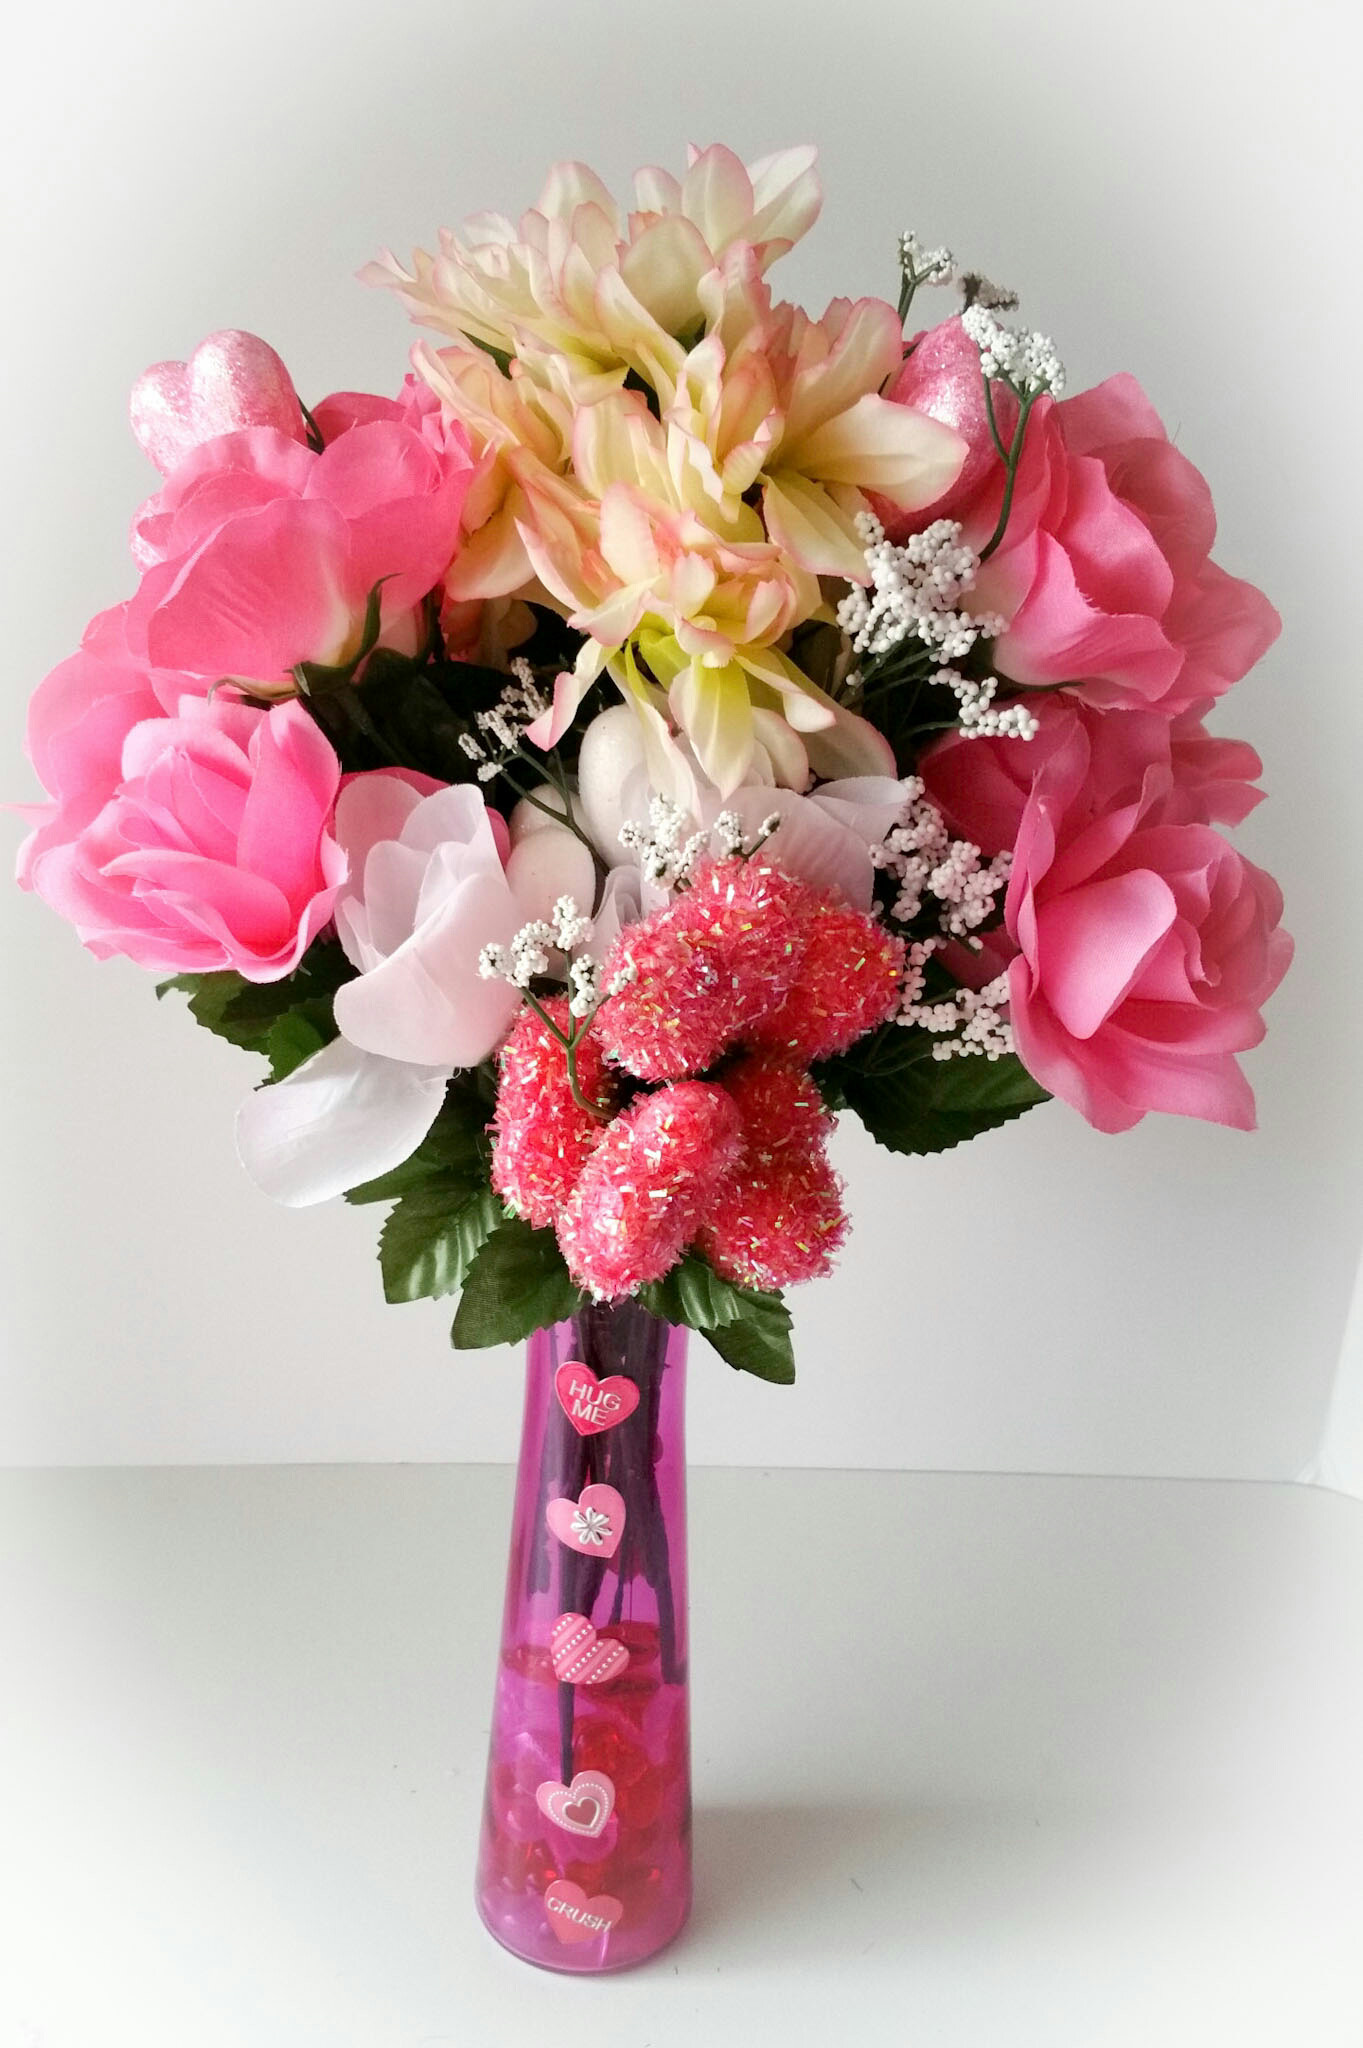 Super-Cute-DIY-Heart-Vase-Bouquet-Nineteen-LiWBF